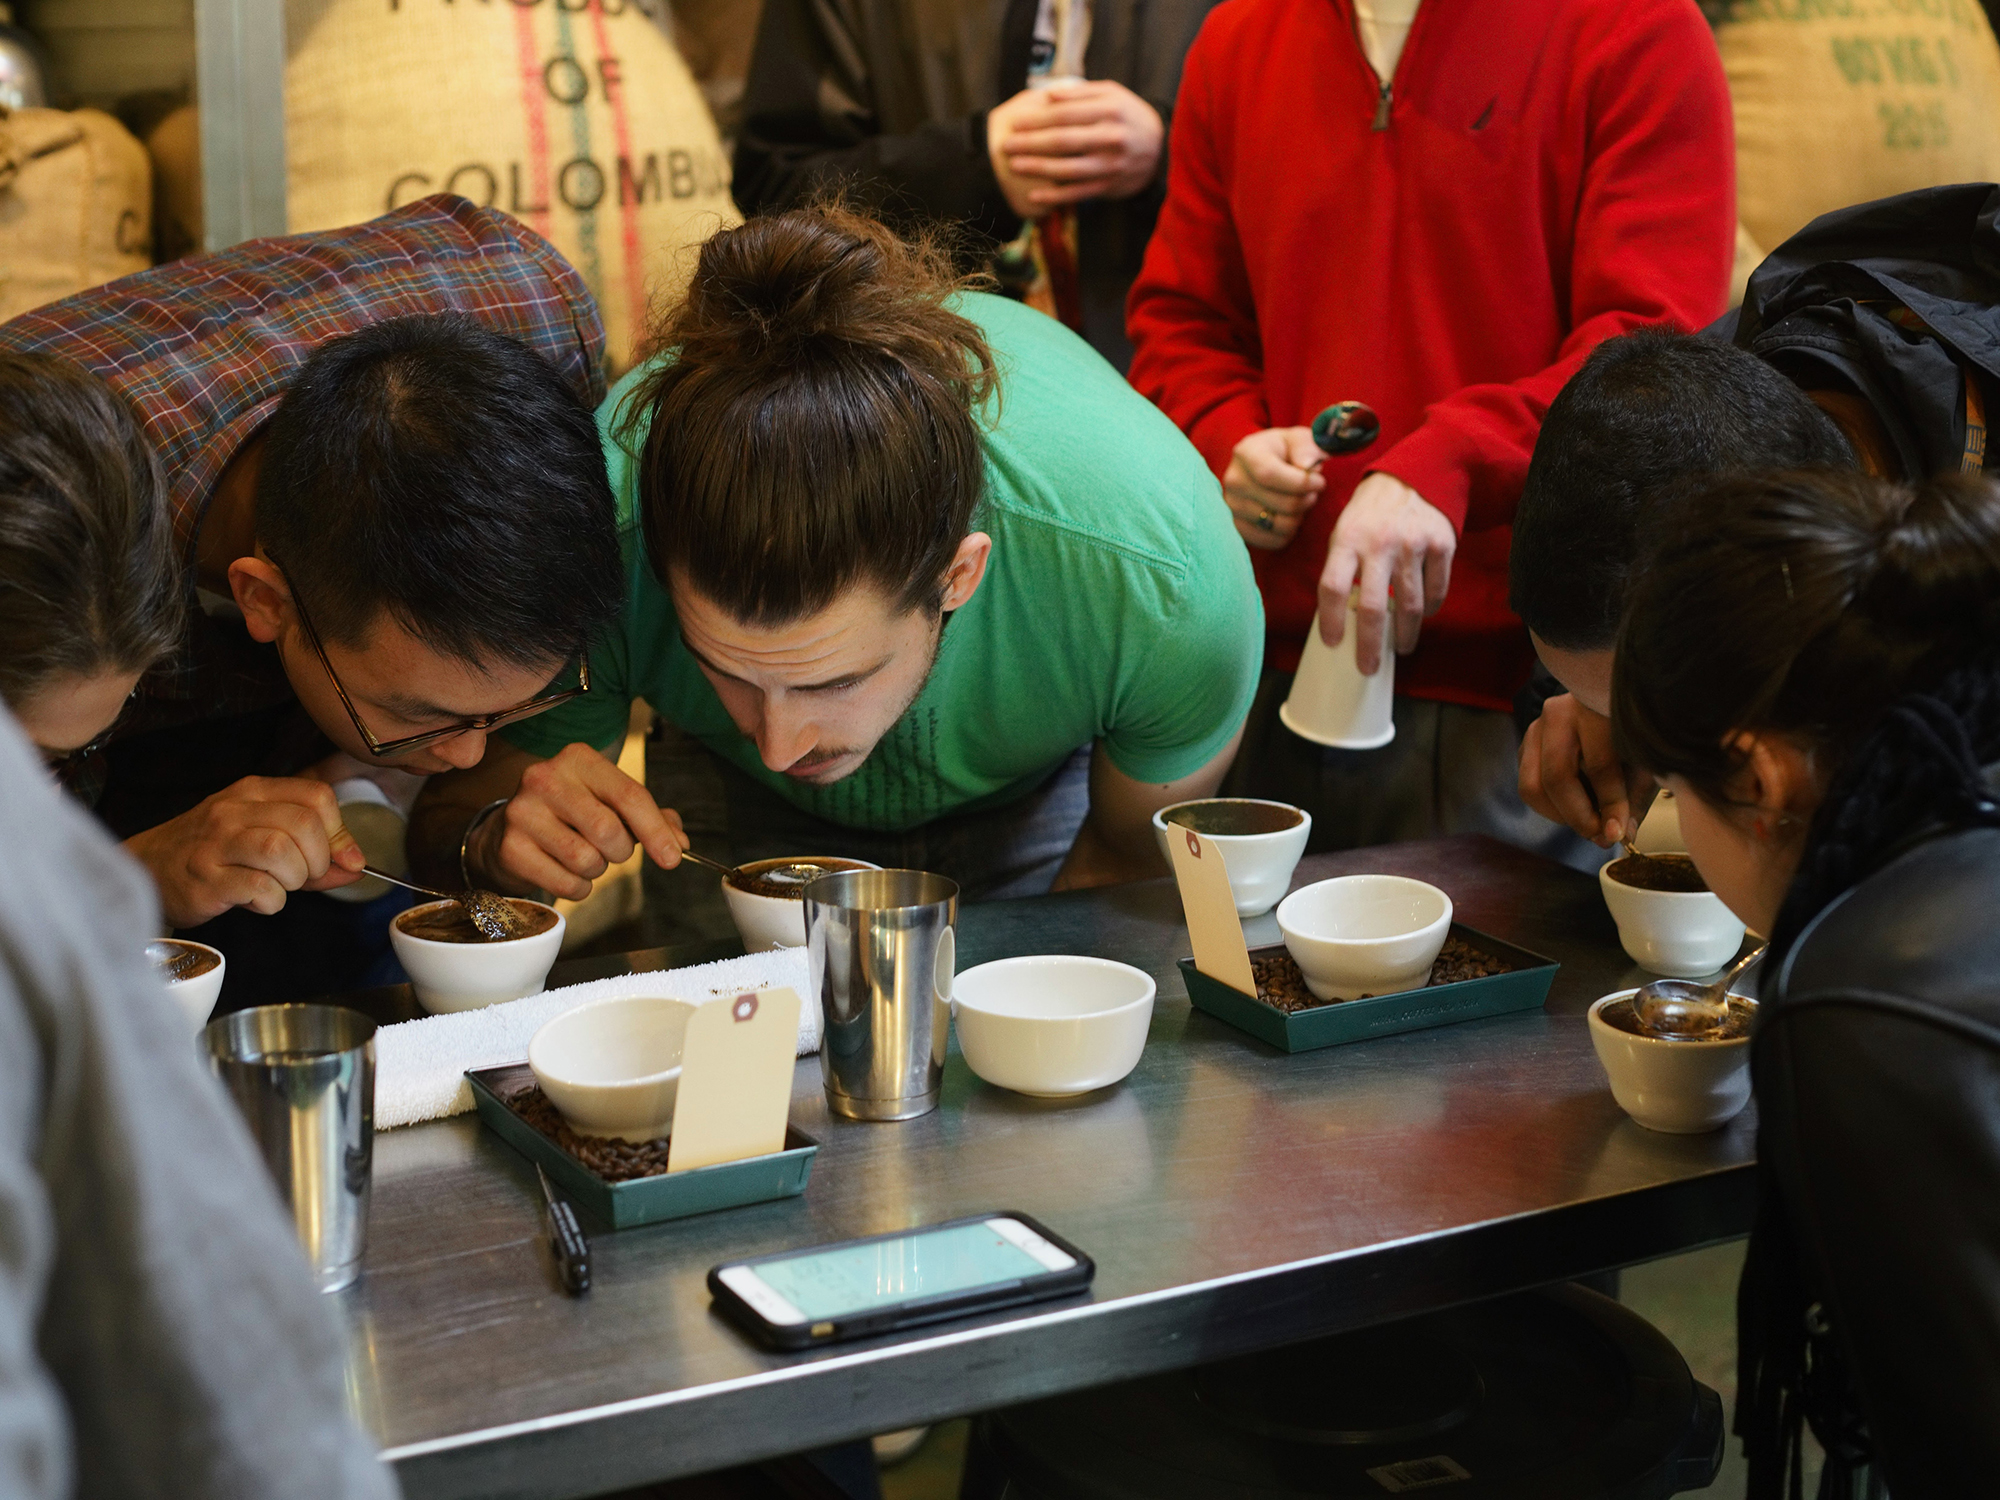 John D. Freyer,  Recovery Roast Cupping event detail, 2015  Image by John D. Freyer